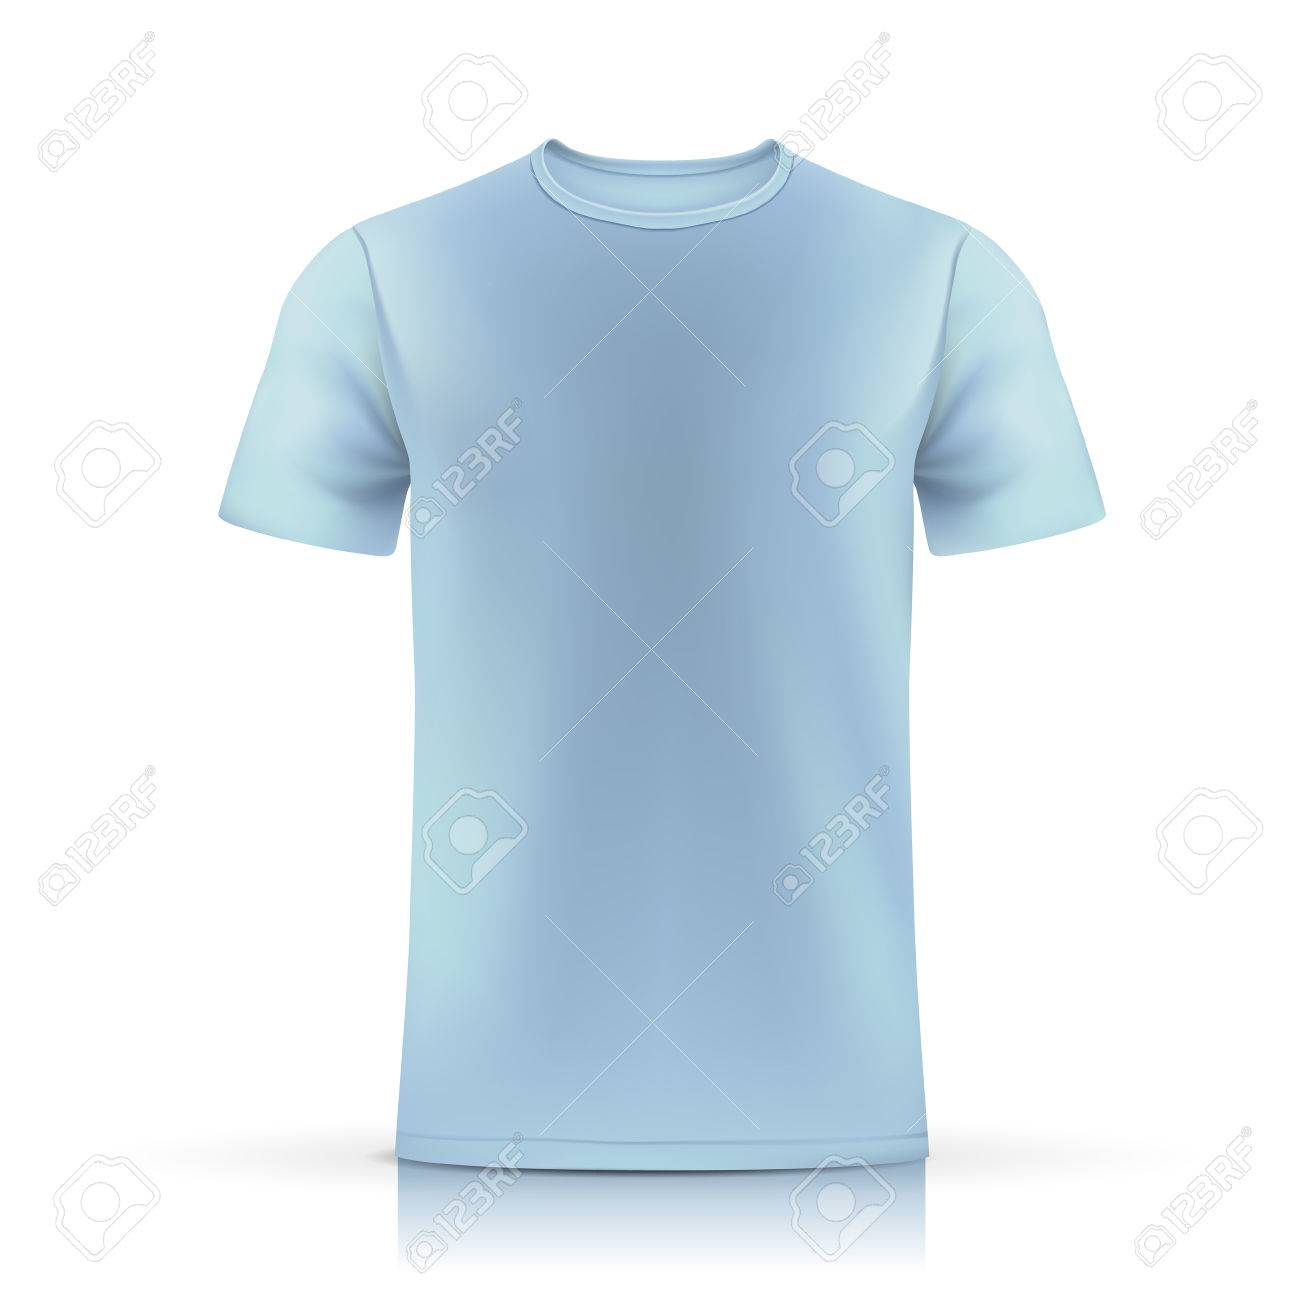 Light Blue T Shirt Template Isolated On White Background